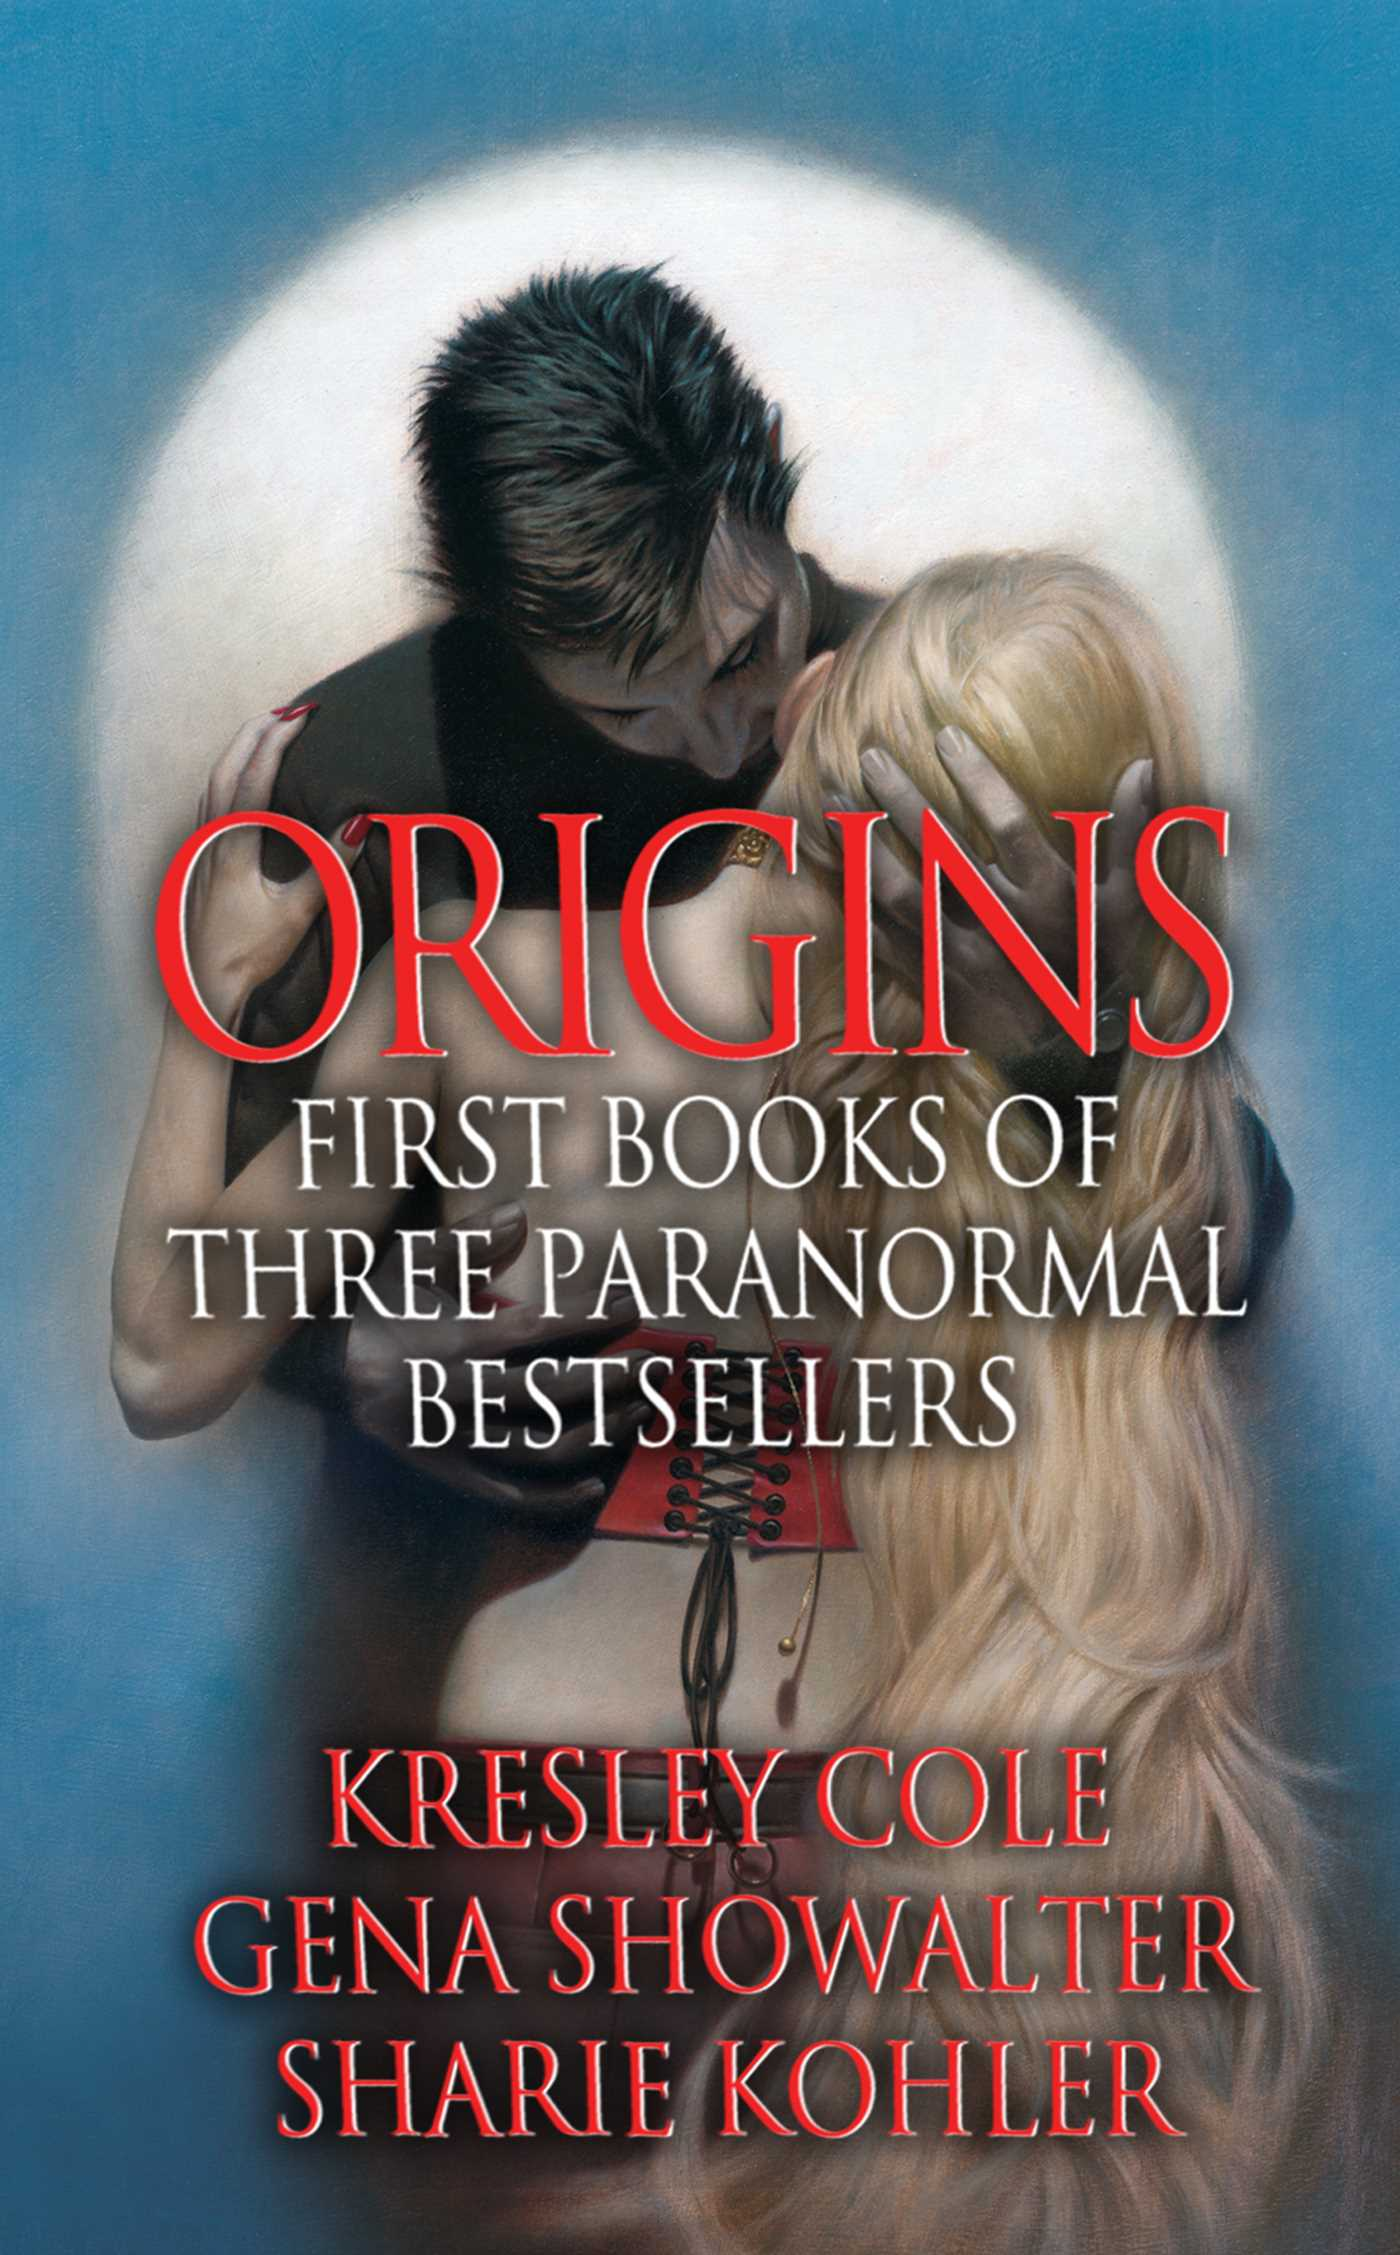 Origins first books of three paranormal bestsellers cole showalter kohler 9781451652161 hr